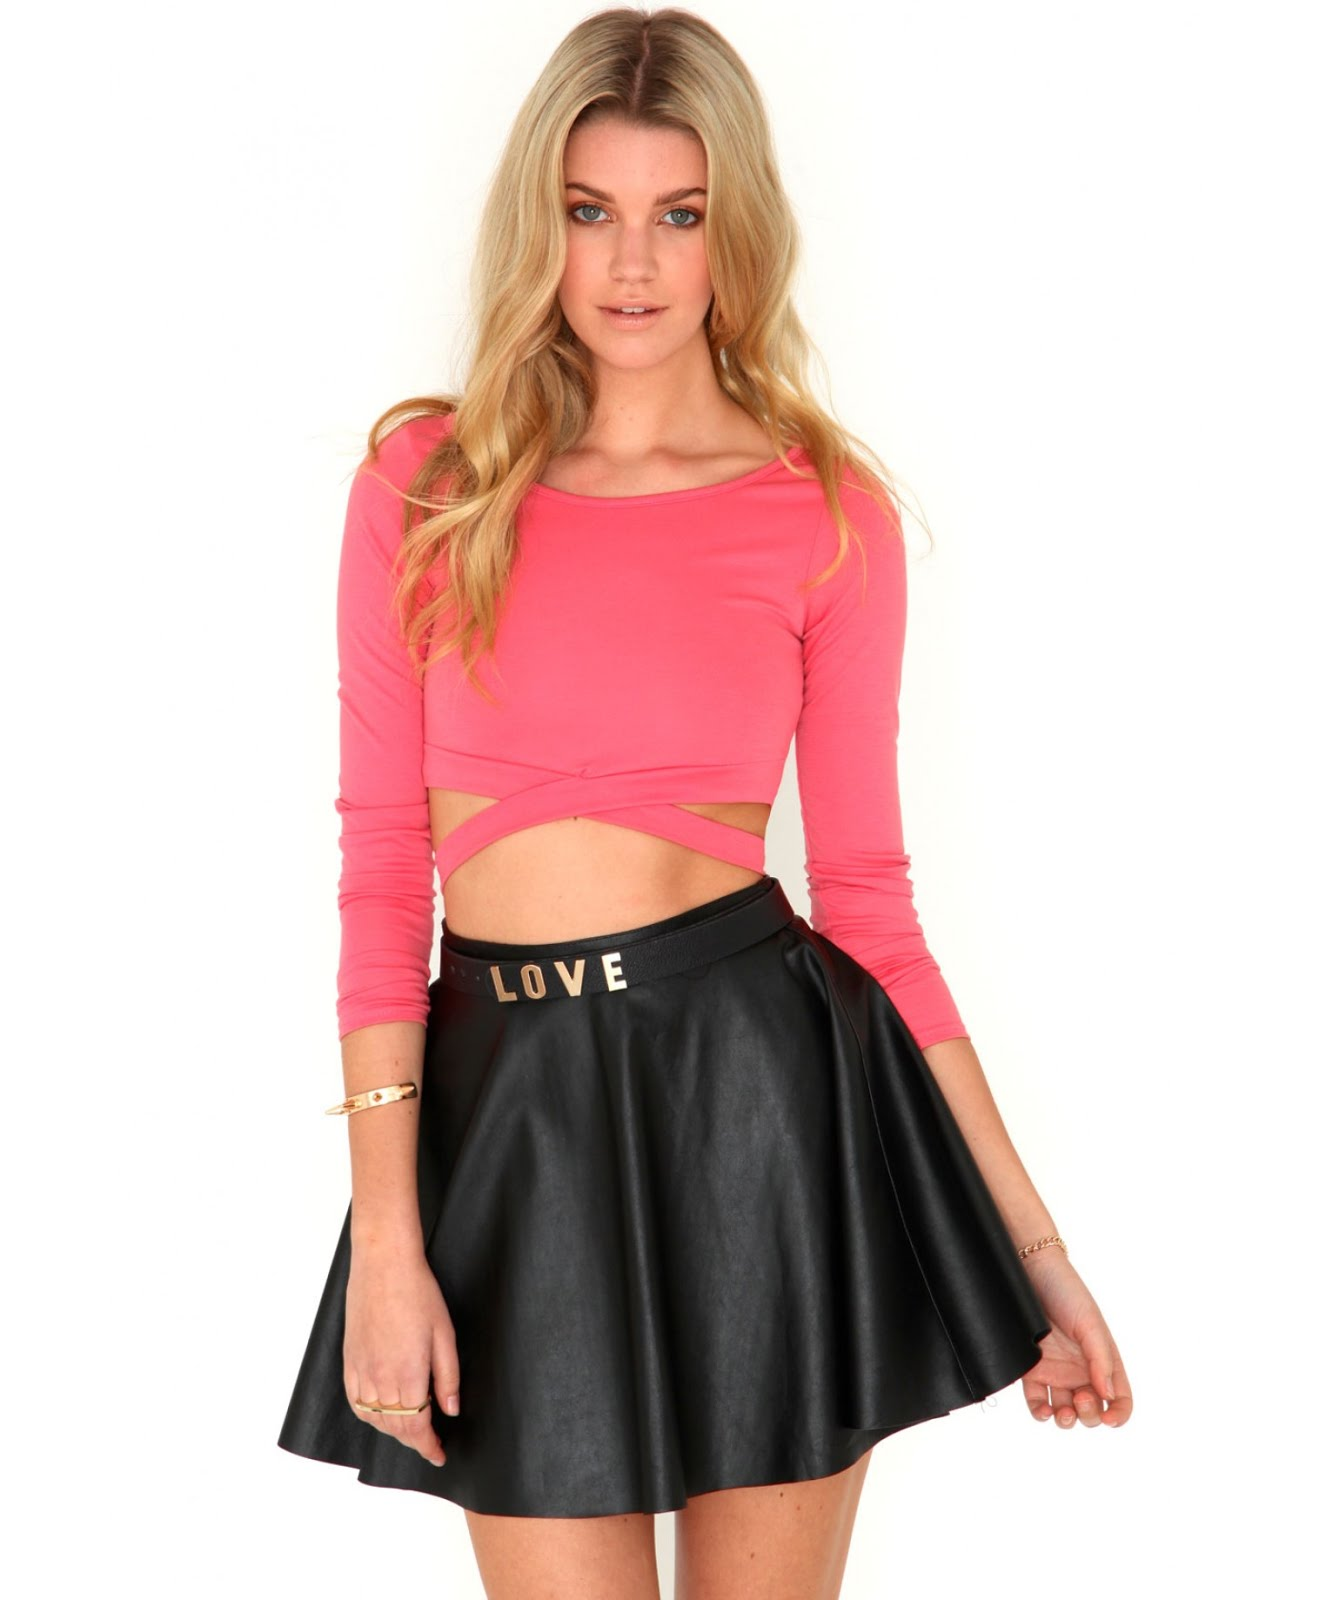 9 Super Cool Super Sexy Holiday Outfit Ideas for 2013